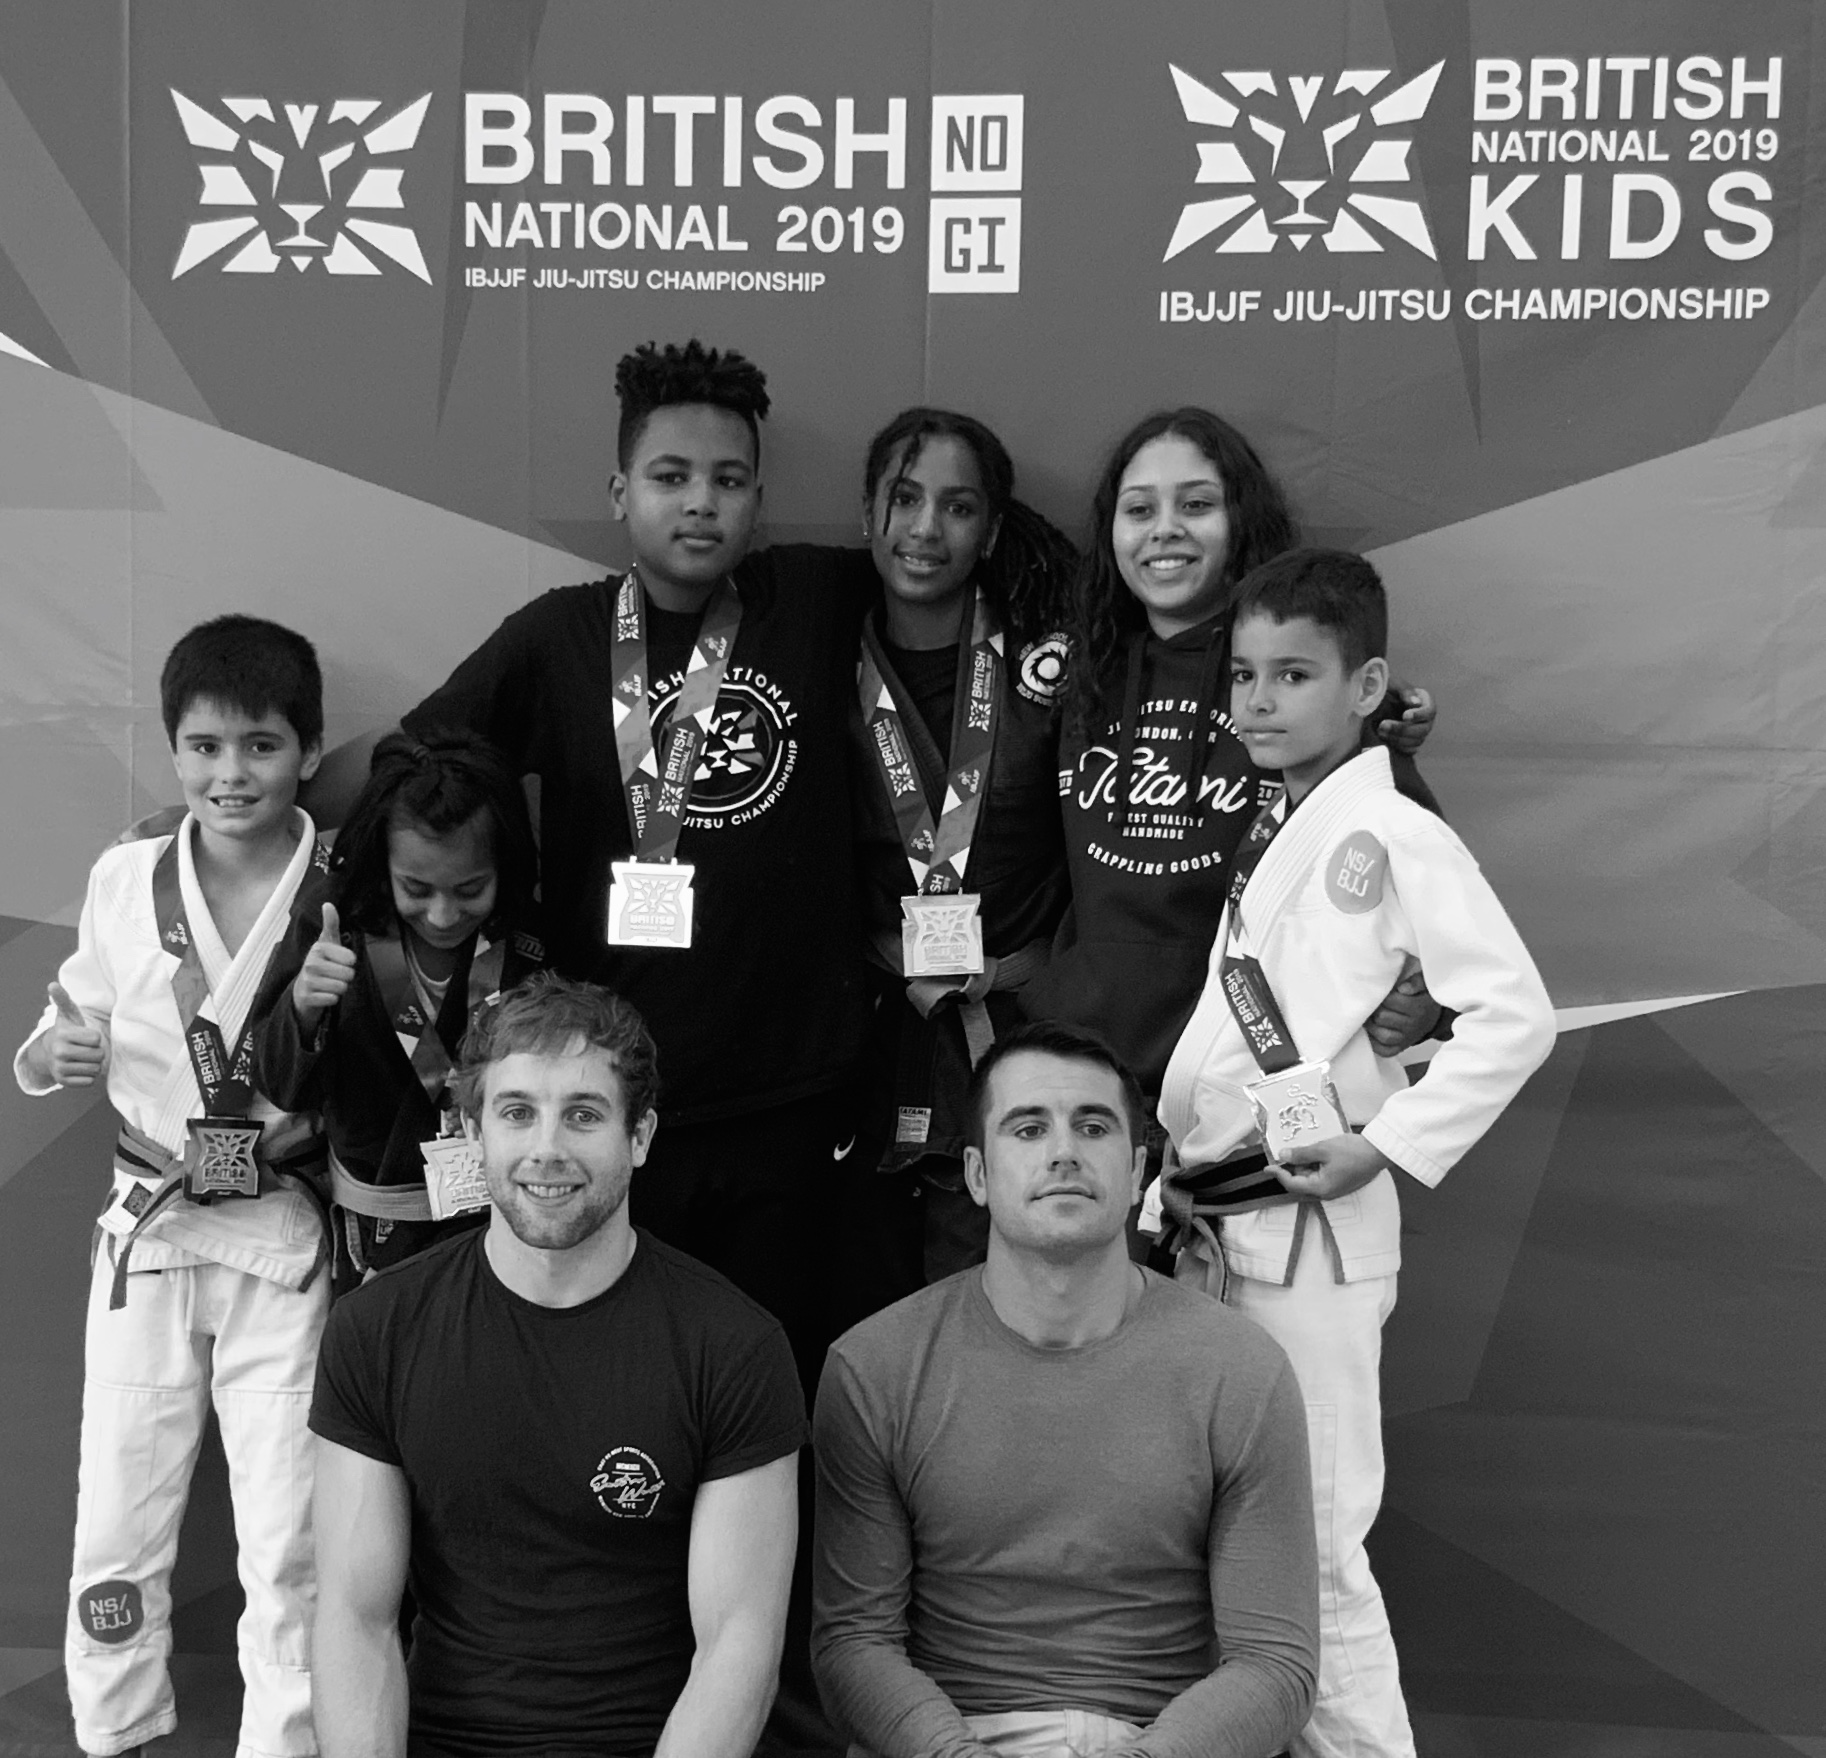 Youth Squad – IBJJF British National Jiu Jitsu Championship 2019